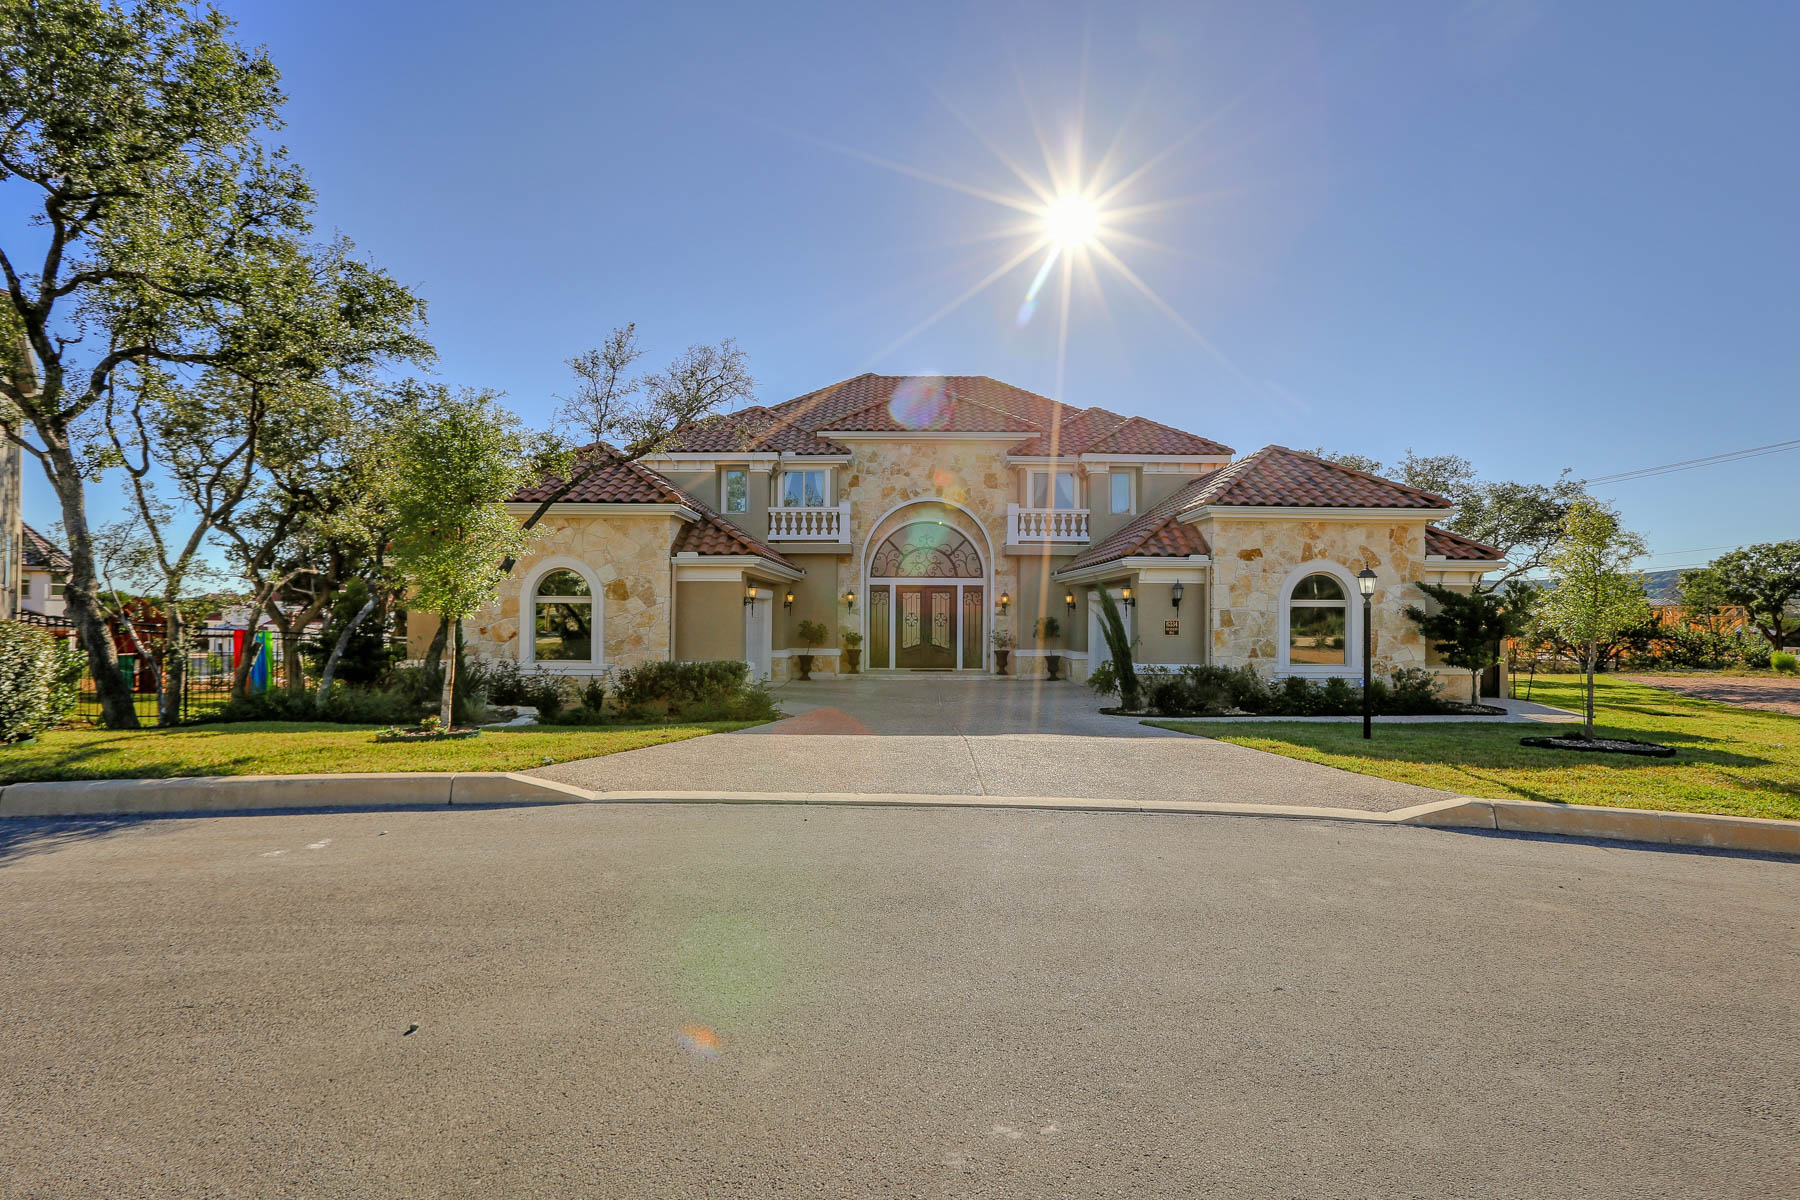 Vivienda unifamiliar por un Venta en Magnificent Estate in The Dominion 6334 Granada Way The Dominion, San Antonio, Texas, 78257 Estados Unidos